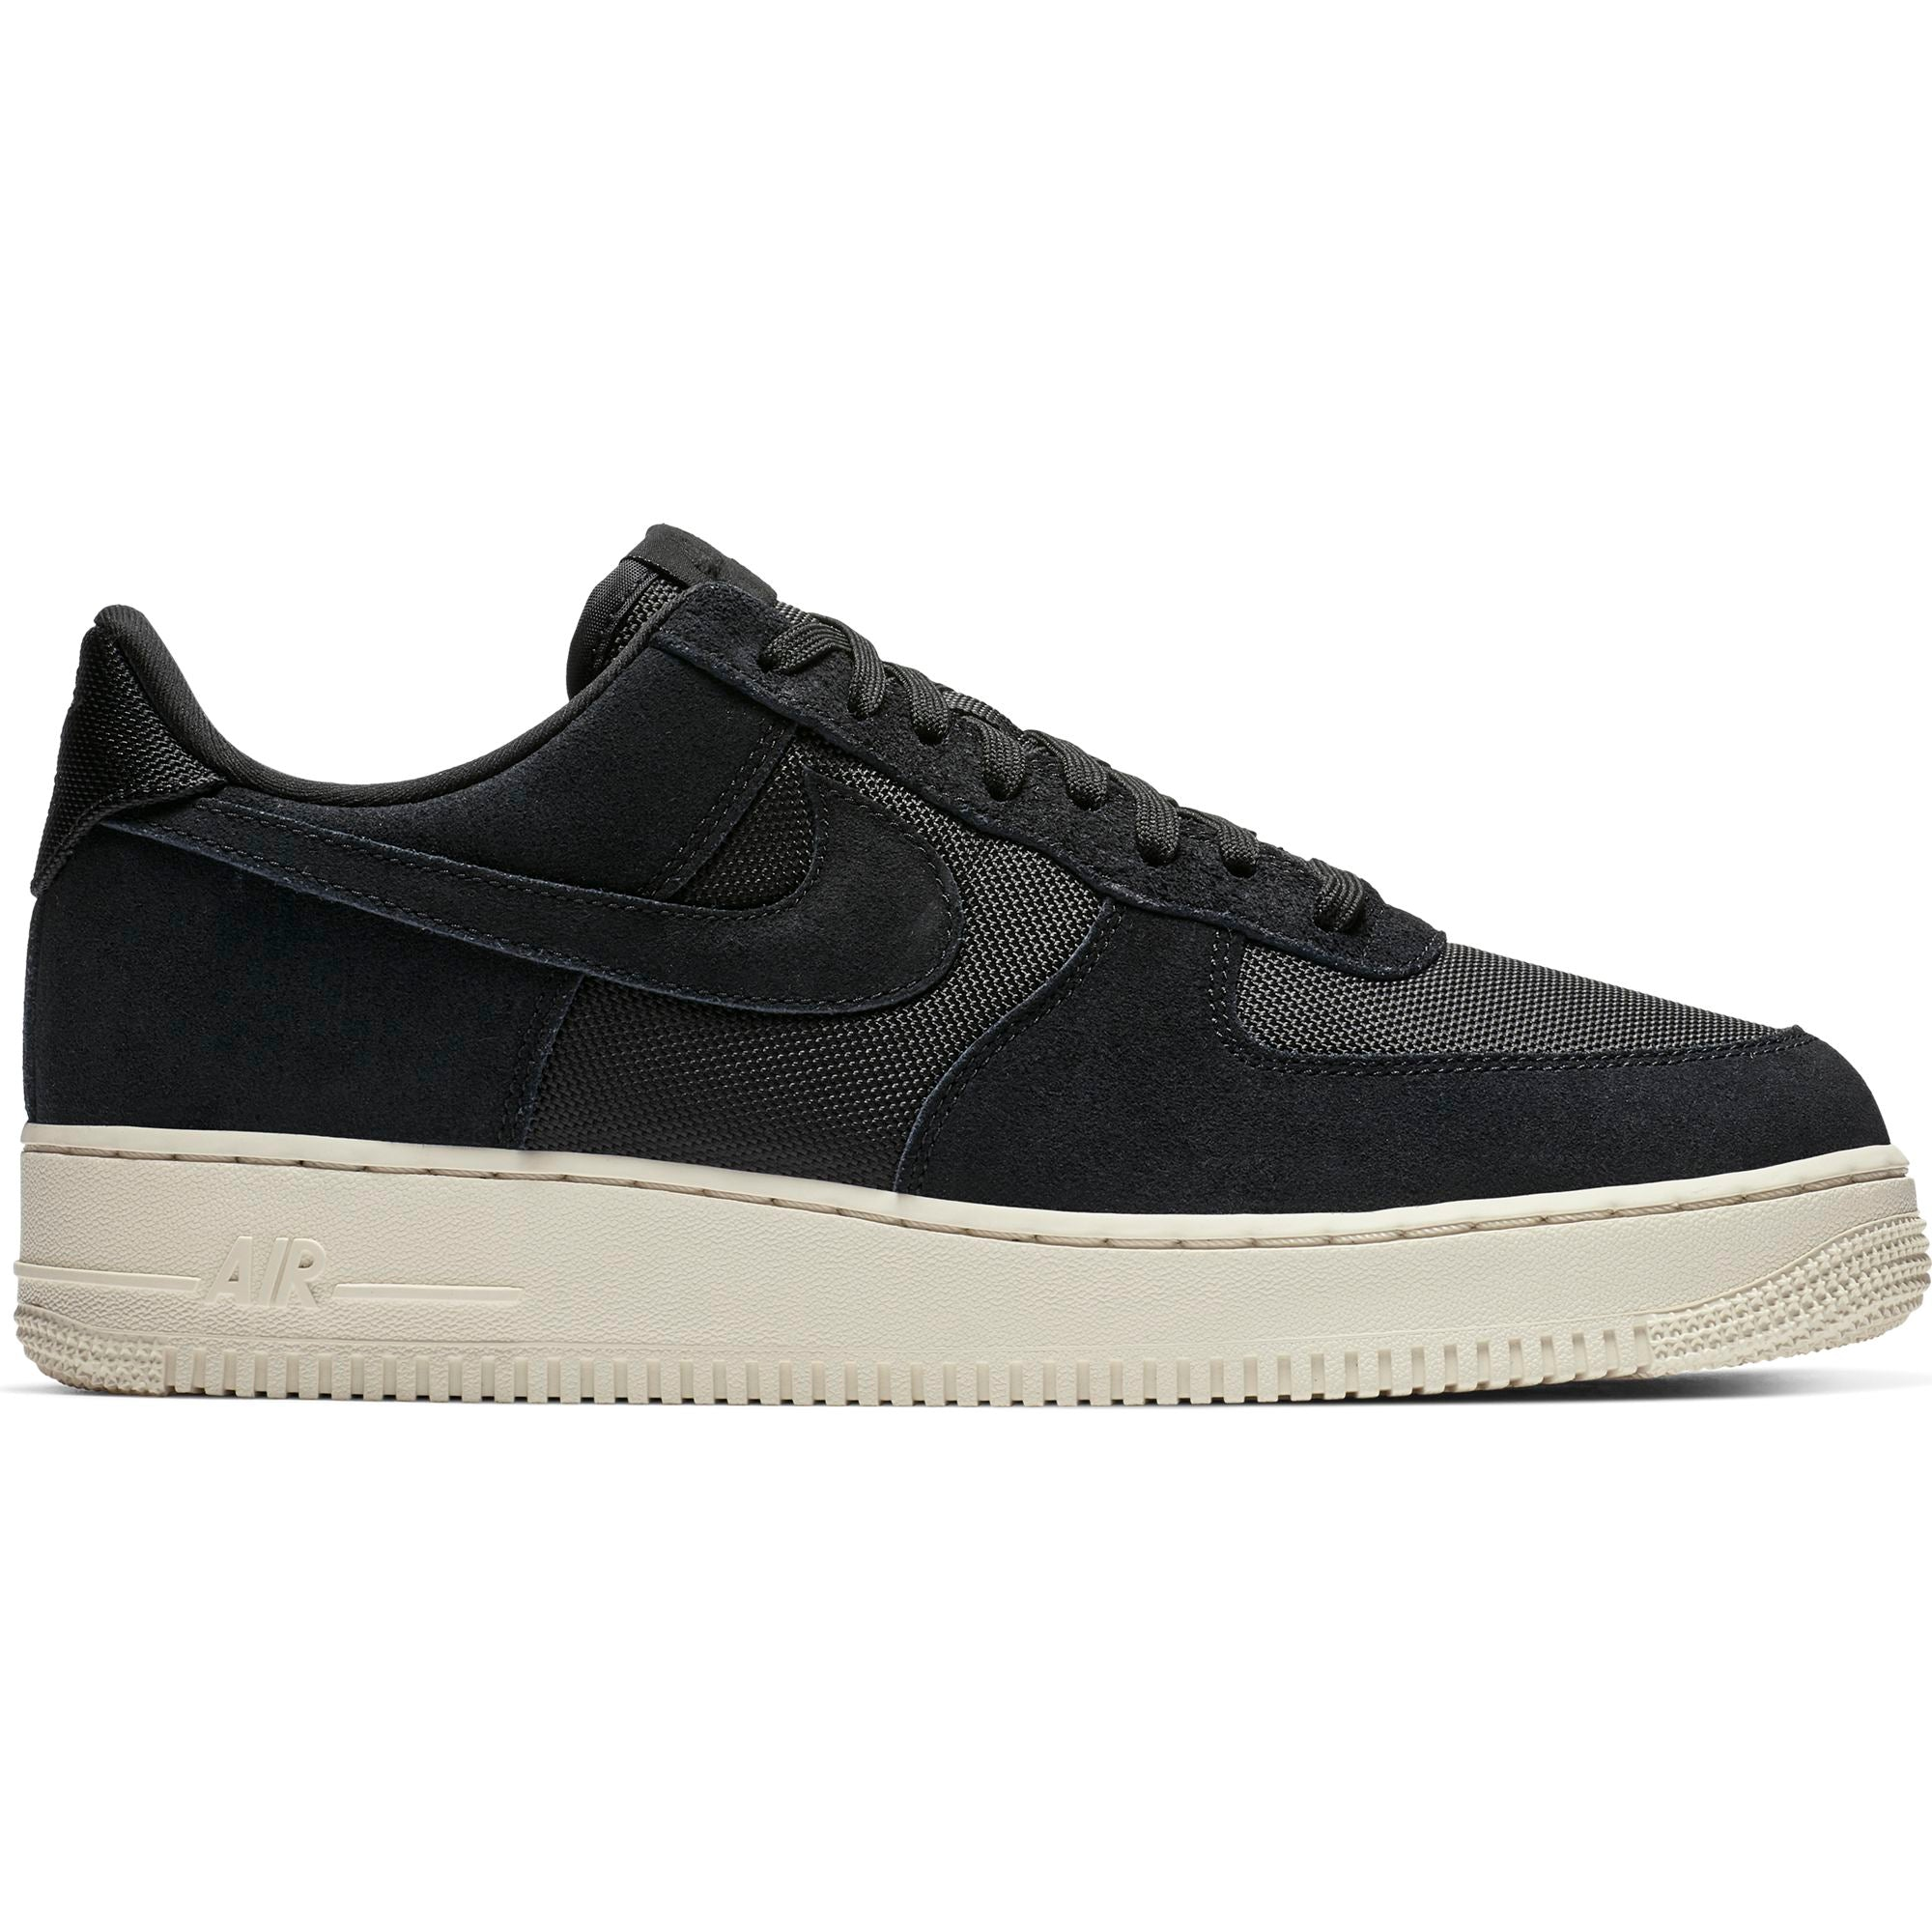 sneakers for cheap c5ca5 3e90b Nike Men s AIR FORCE 1  07 1 Low-cut Sneakers, Black Black Pale Ivory -  First Clothing